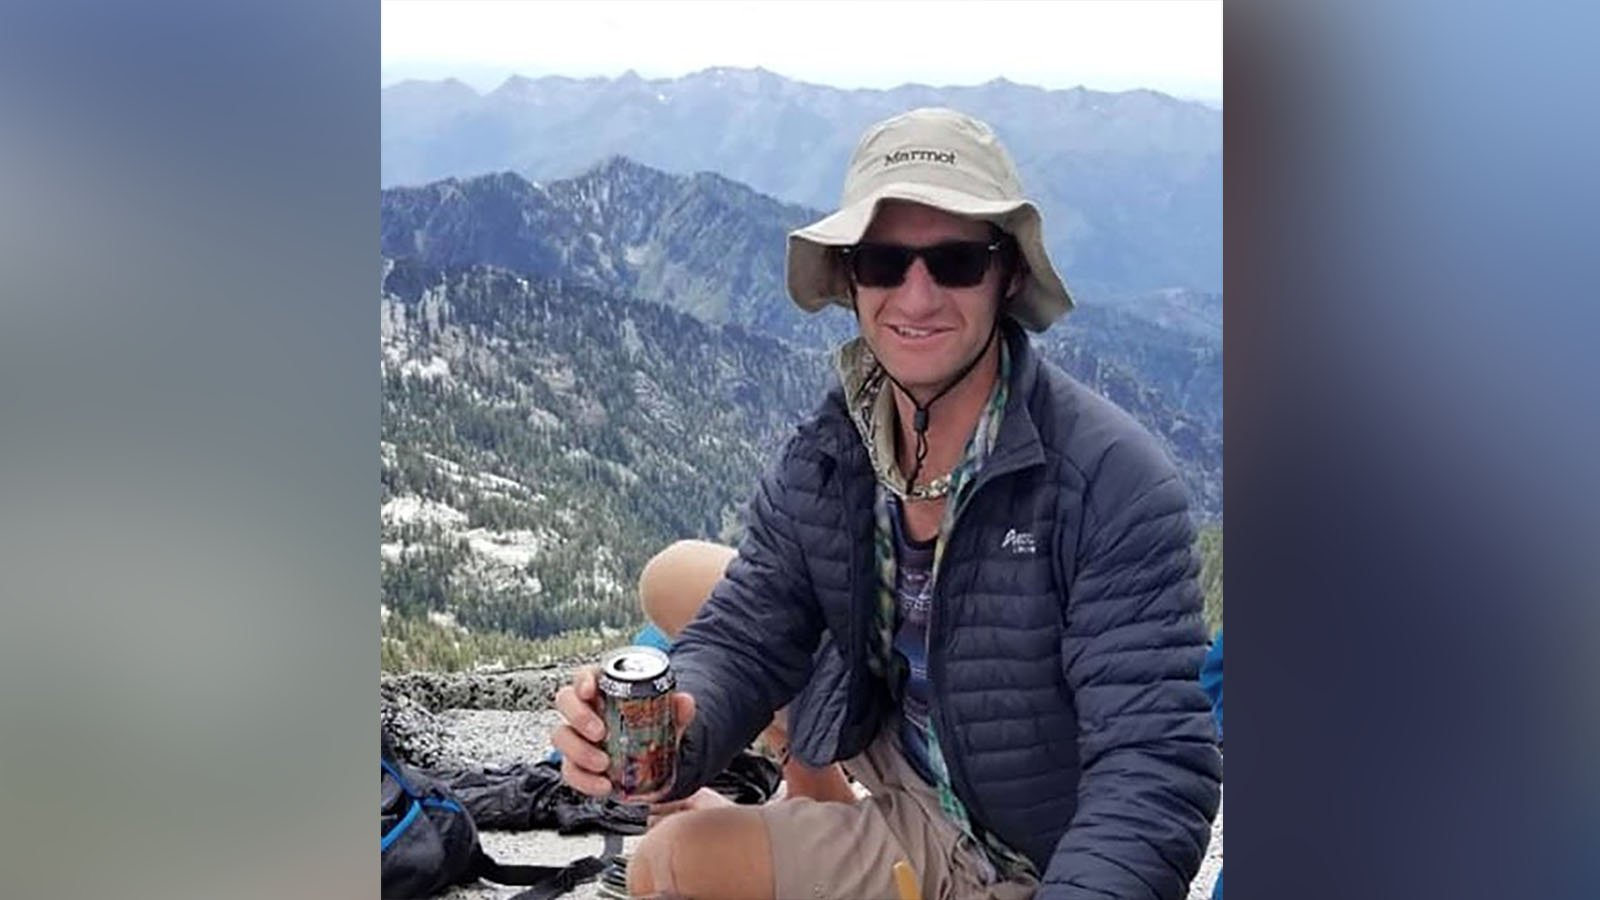 A 3-day search for a missing California hiker ends with the discovery of his body